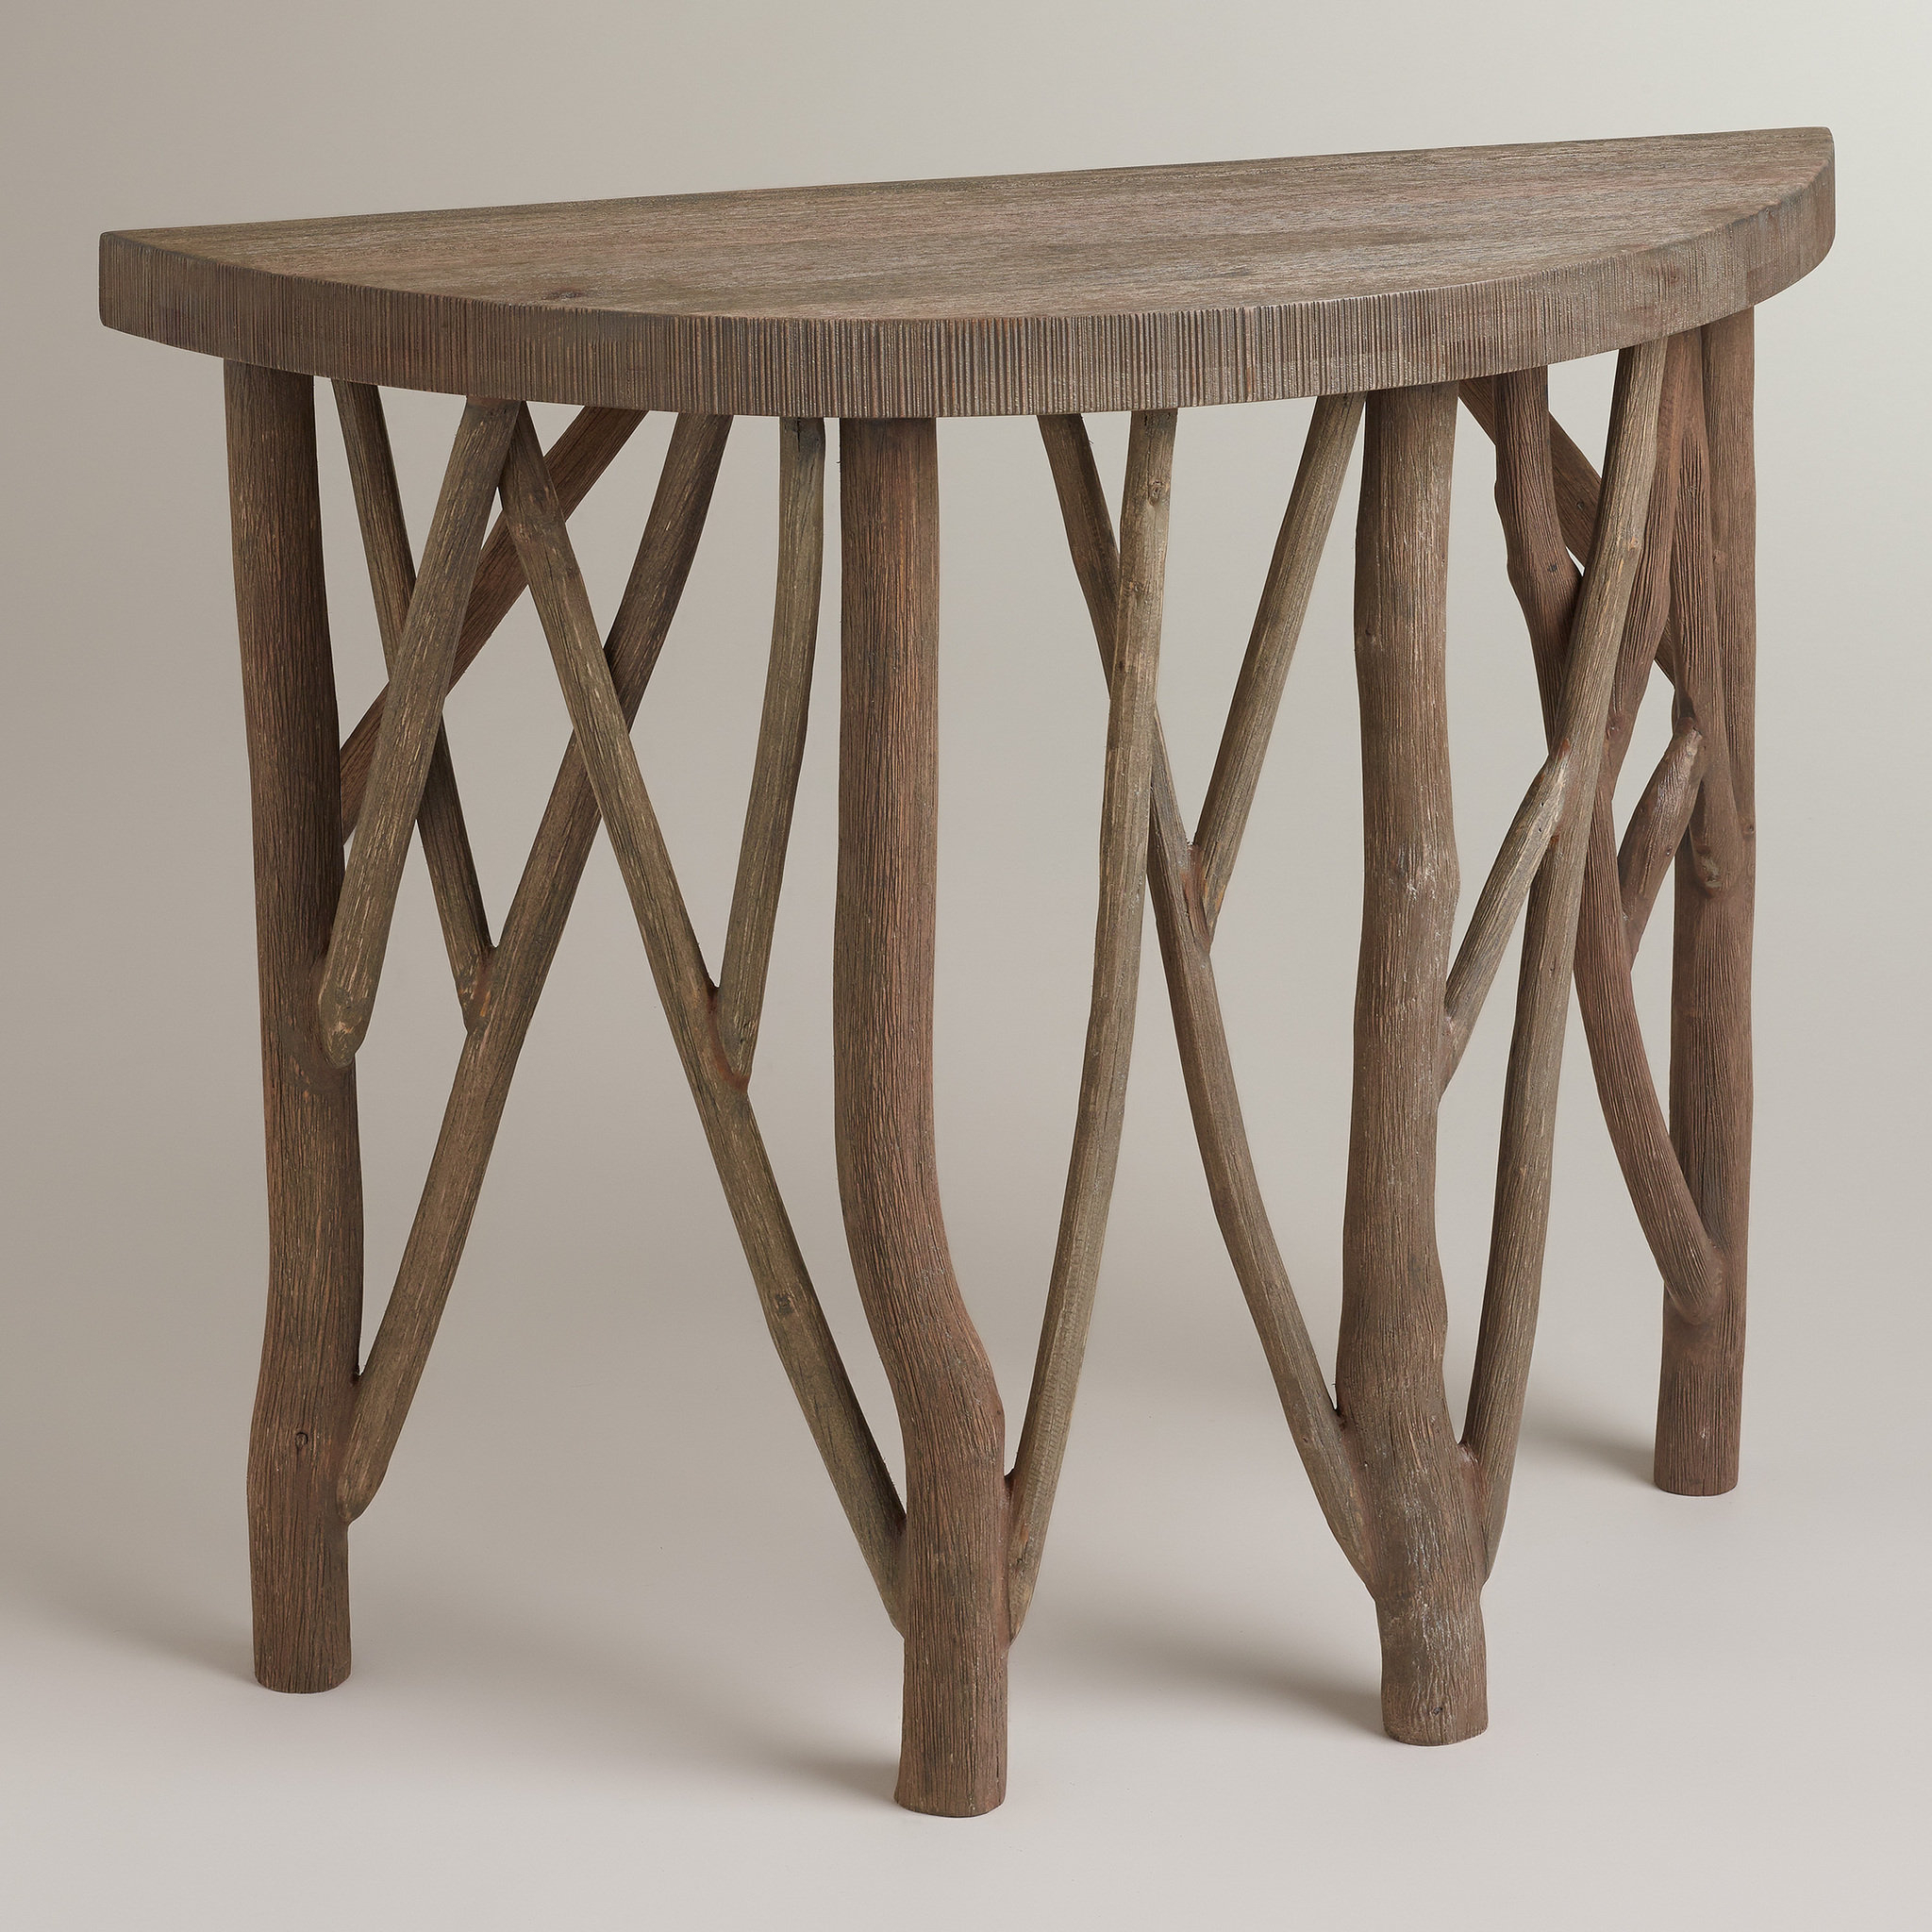 Three Demilune Tables, Three Prices | Oregonlive With Regard To Clairemont Demilune Console Tables (View 27 of 30)